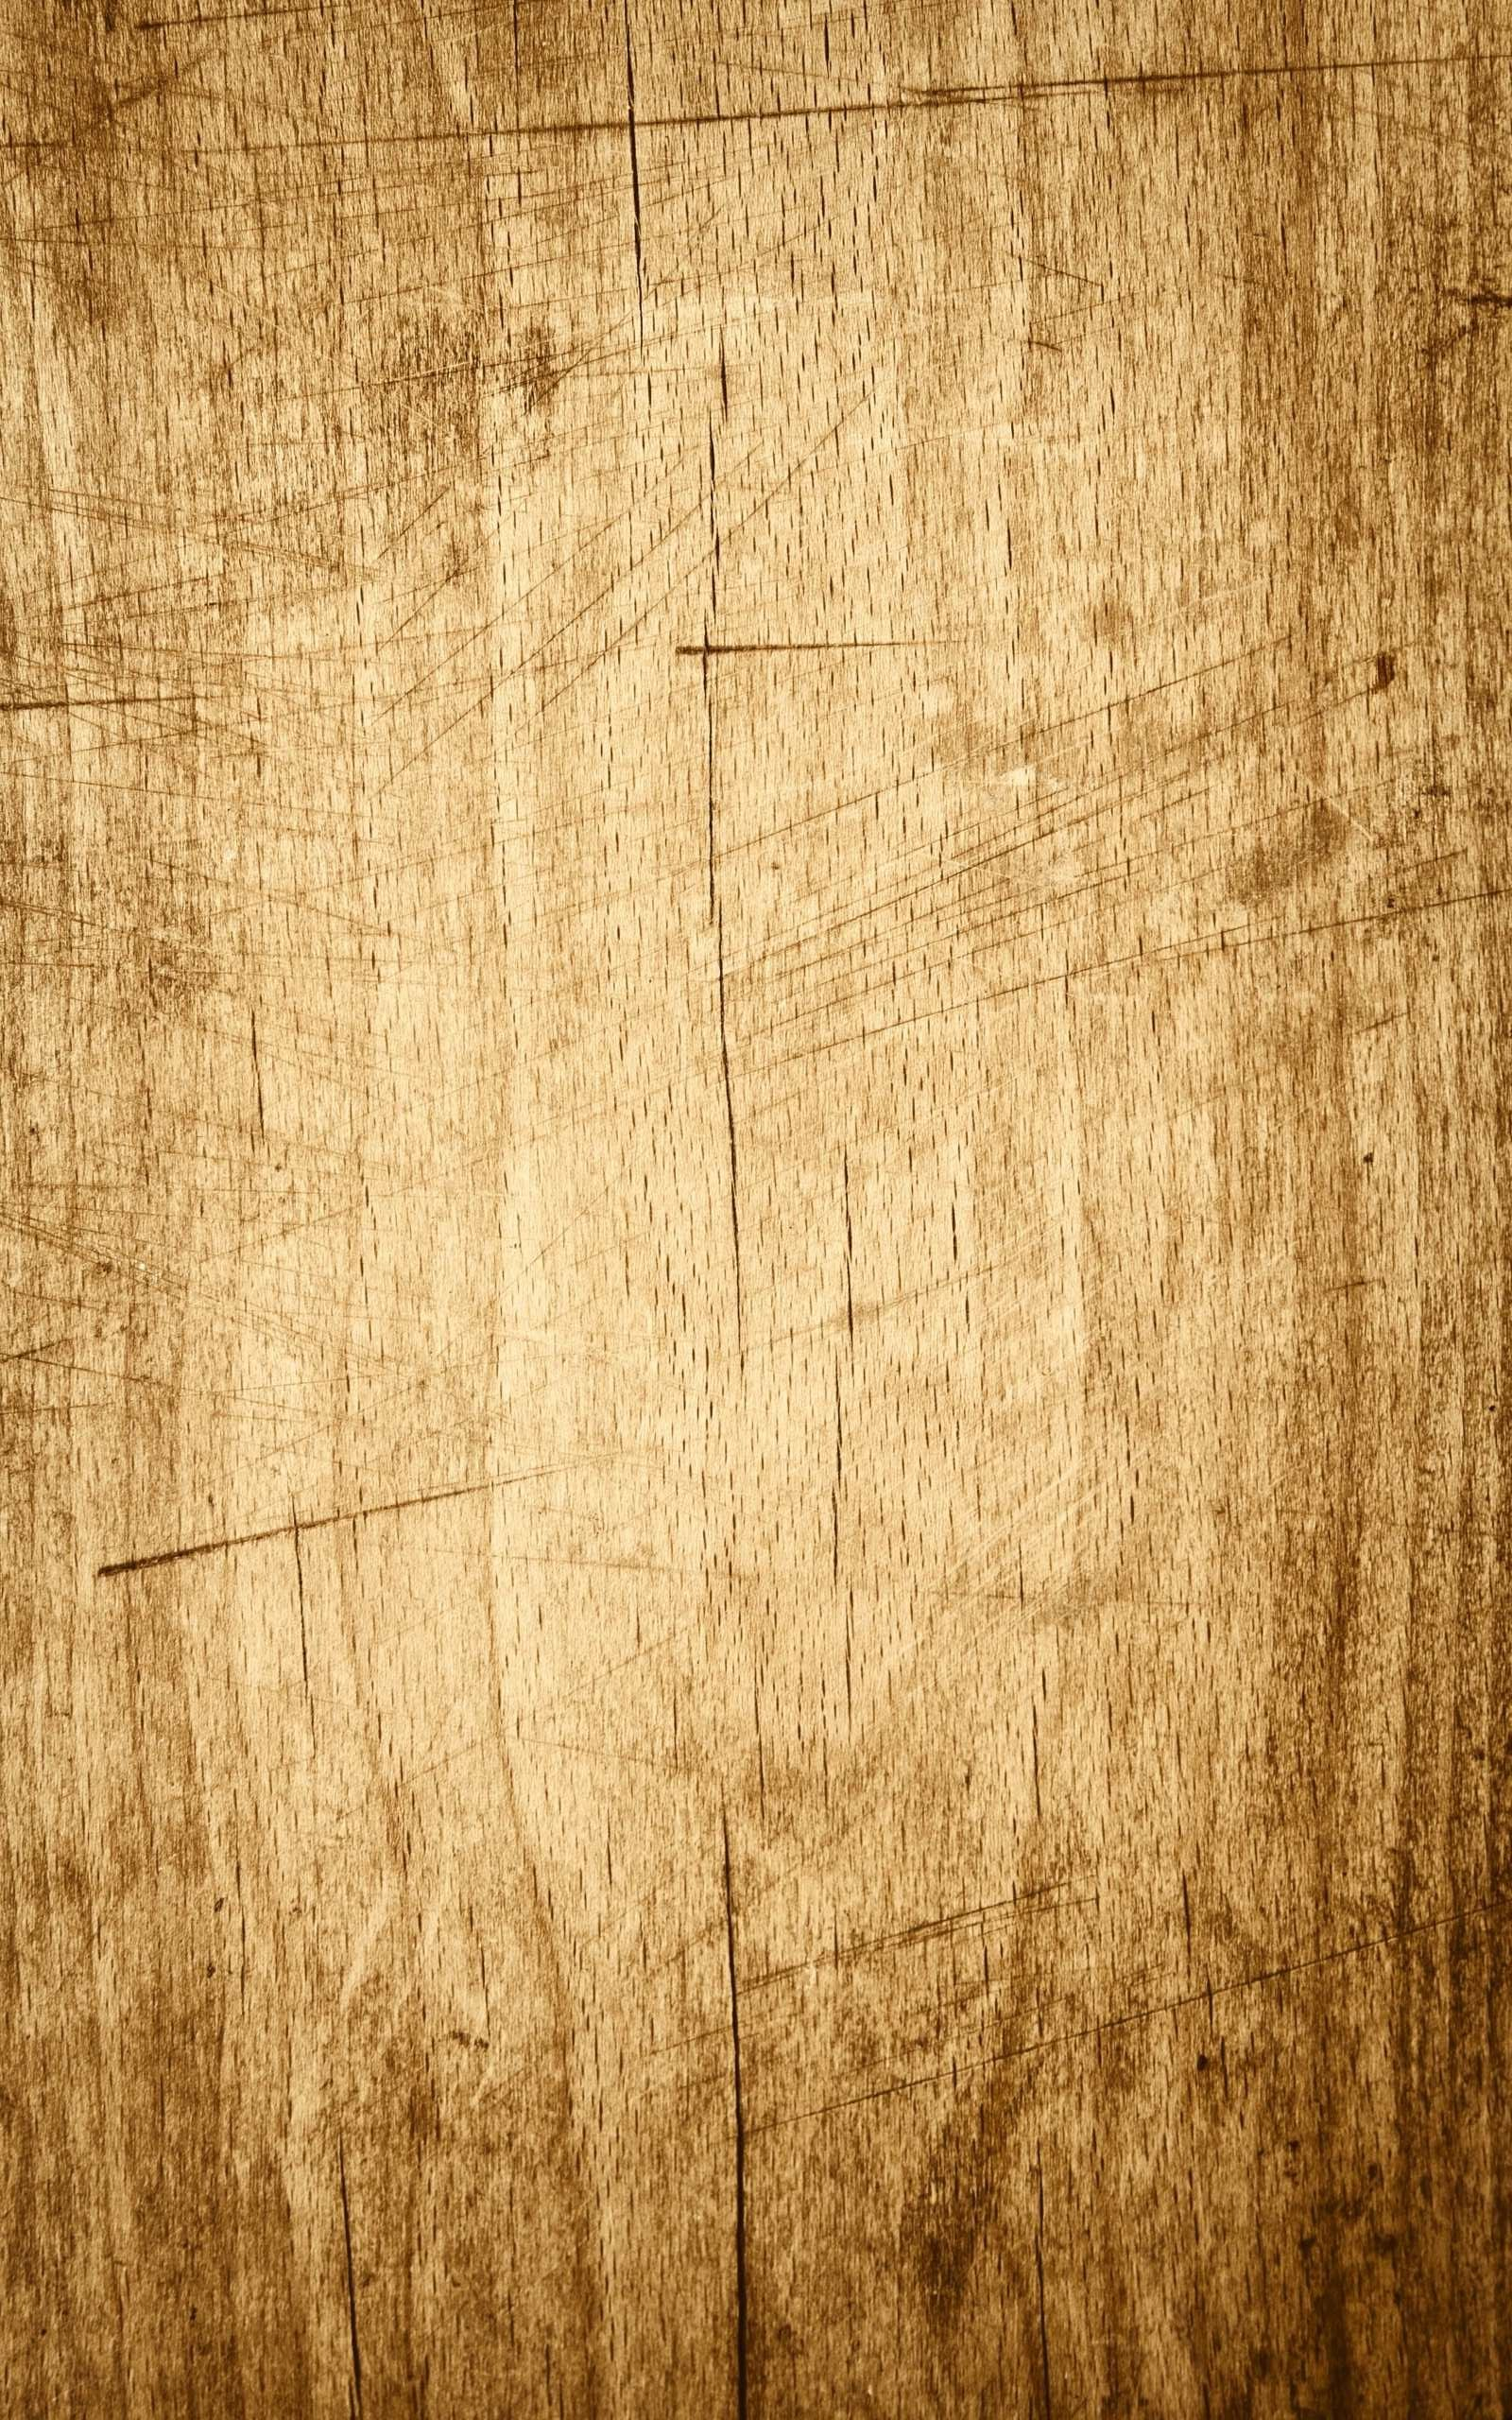 Wooden Desktop Light Wood Background ① Download Free Cool Full Hd